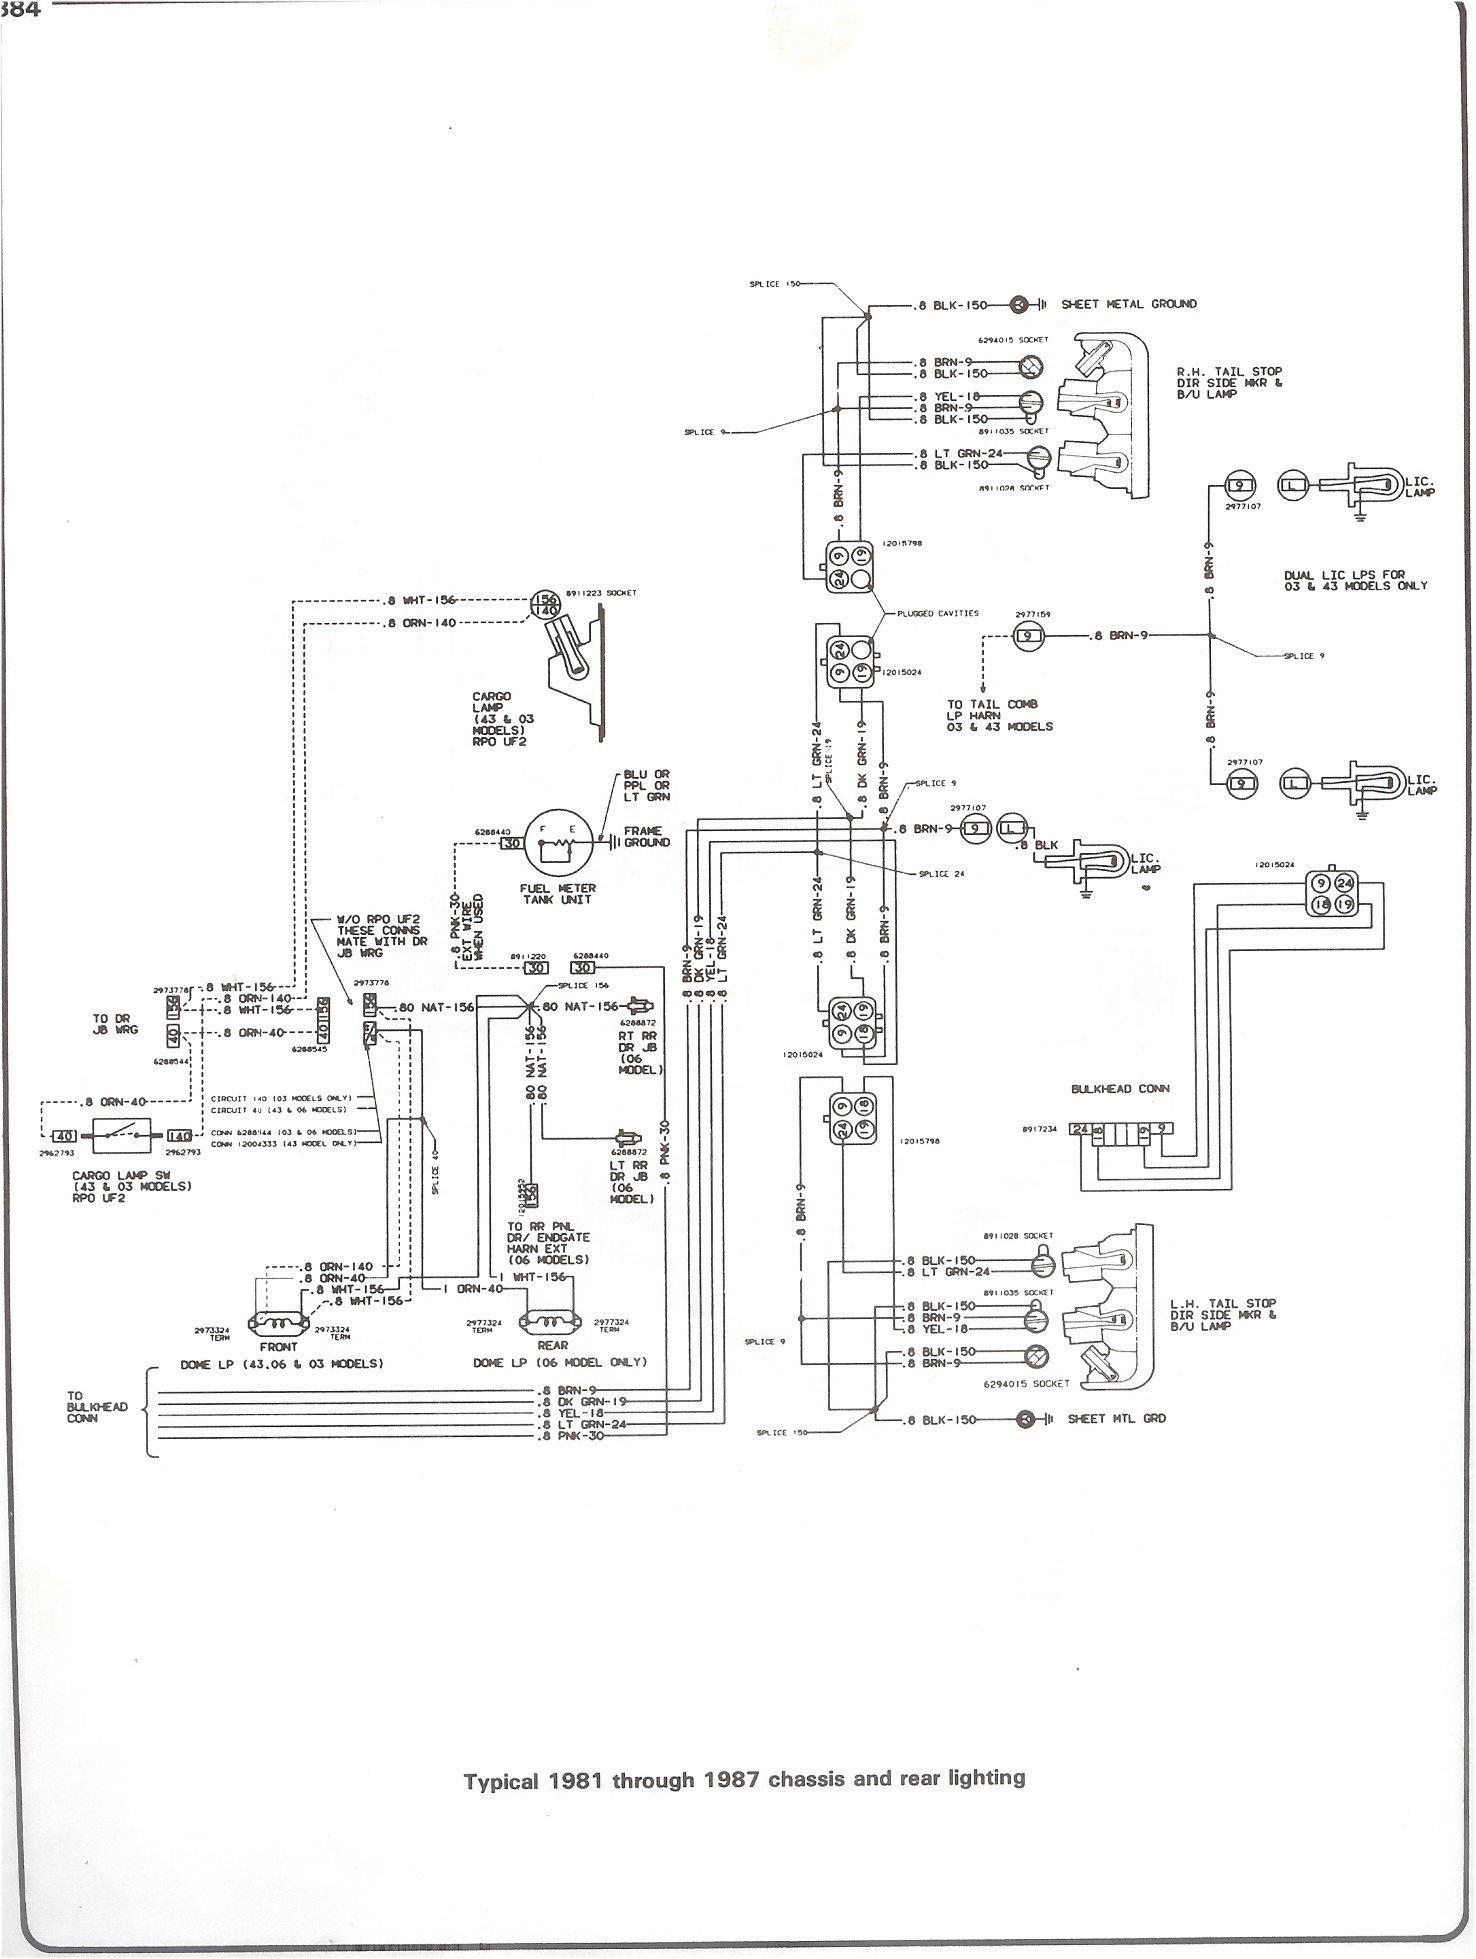 air horn system schematic